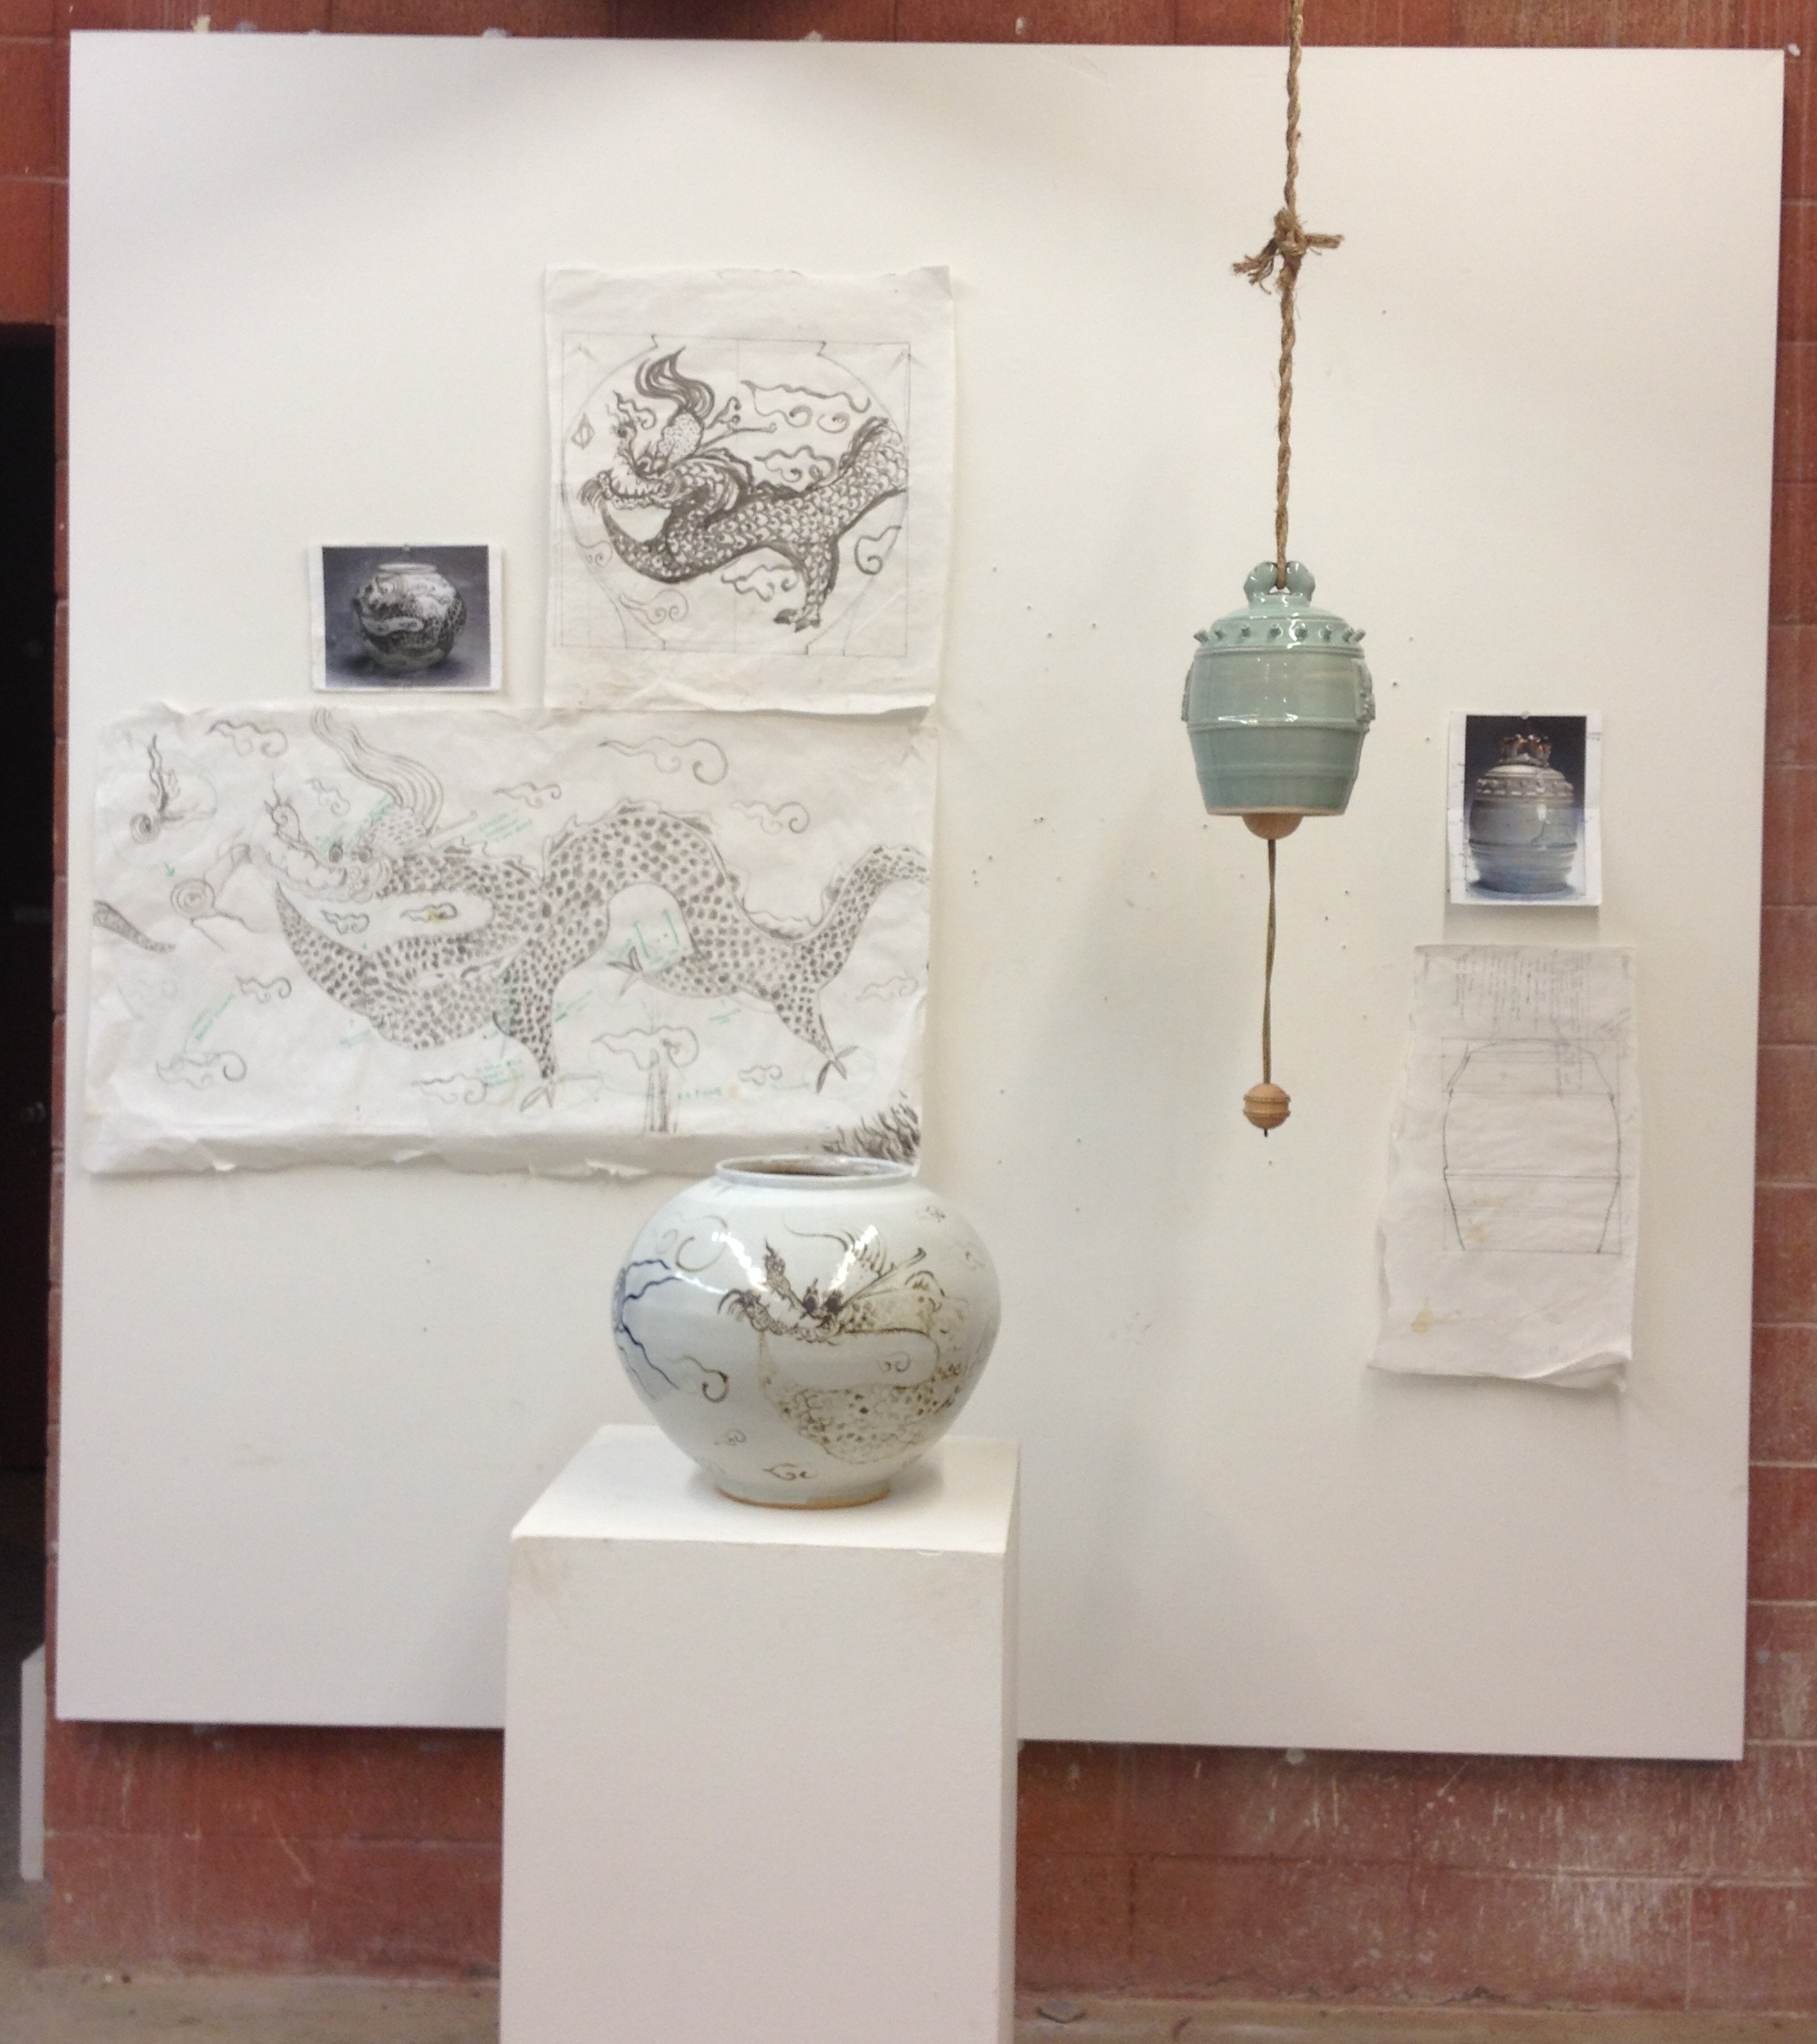 One student's work showing both his decorative brushwork pot, and carved celadon pot (actually a bell), both found in the Asian Art Museum in San Francisco. On the wall behind each piece are the preparatory sketches and diagrams he used to help create the pots.